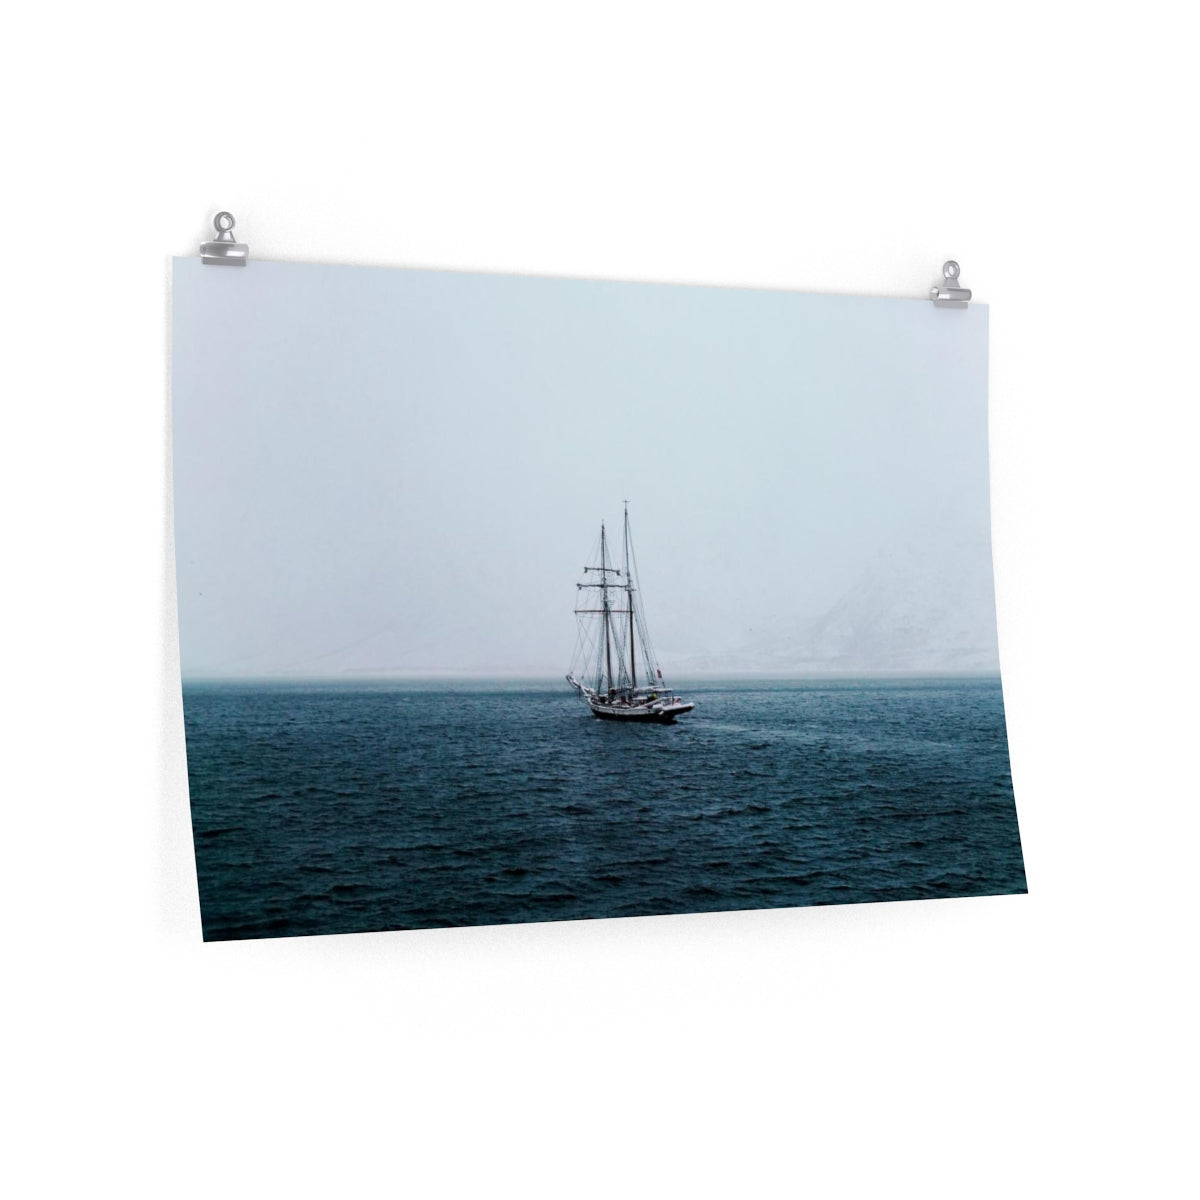 Norwegian Pirate - Wide Print